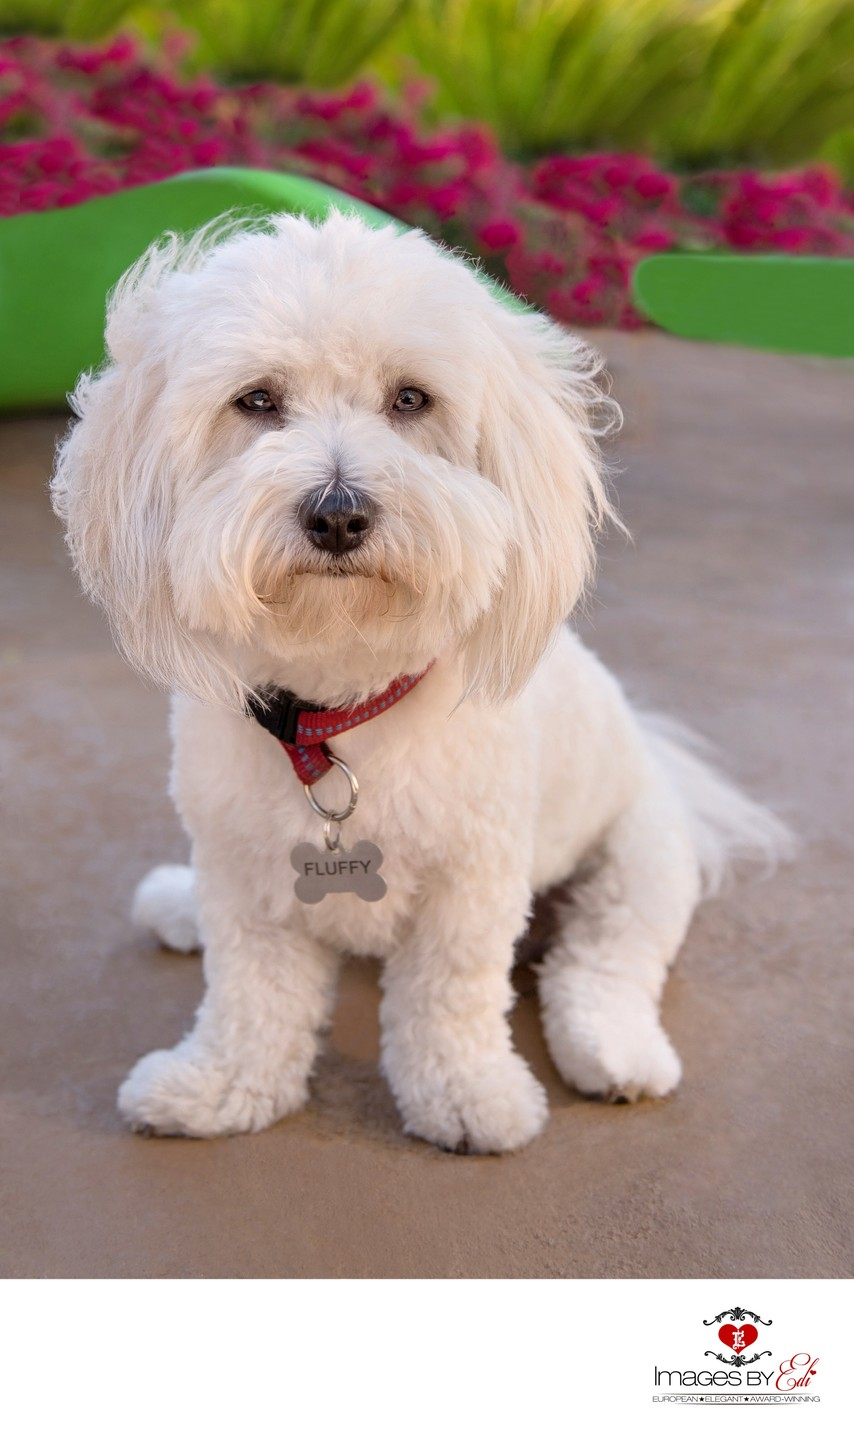 Las Vegas Pet Photographer | Pet Photography at home garden| Images By EDI | Photo of Coton de Tulear boy